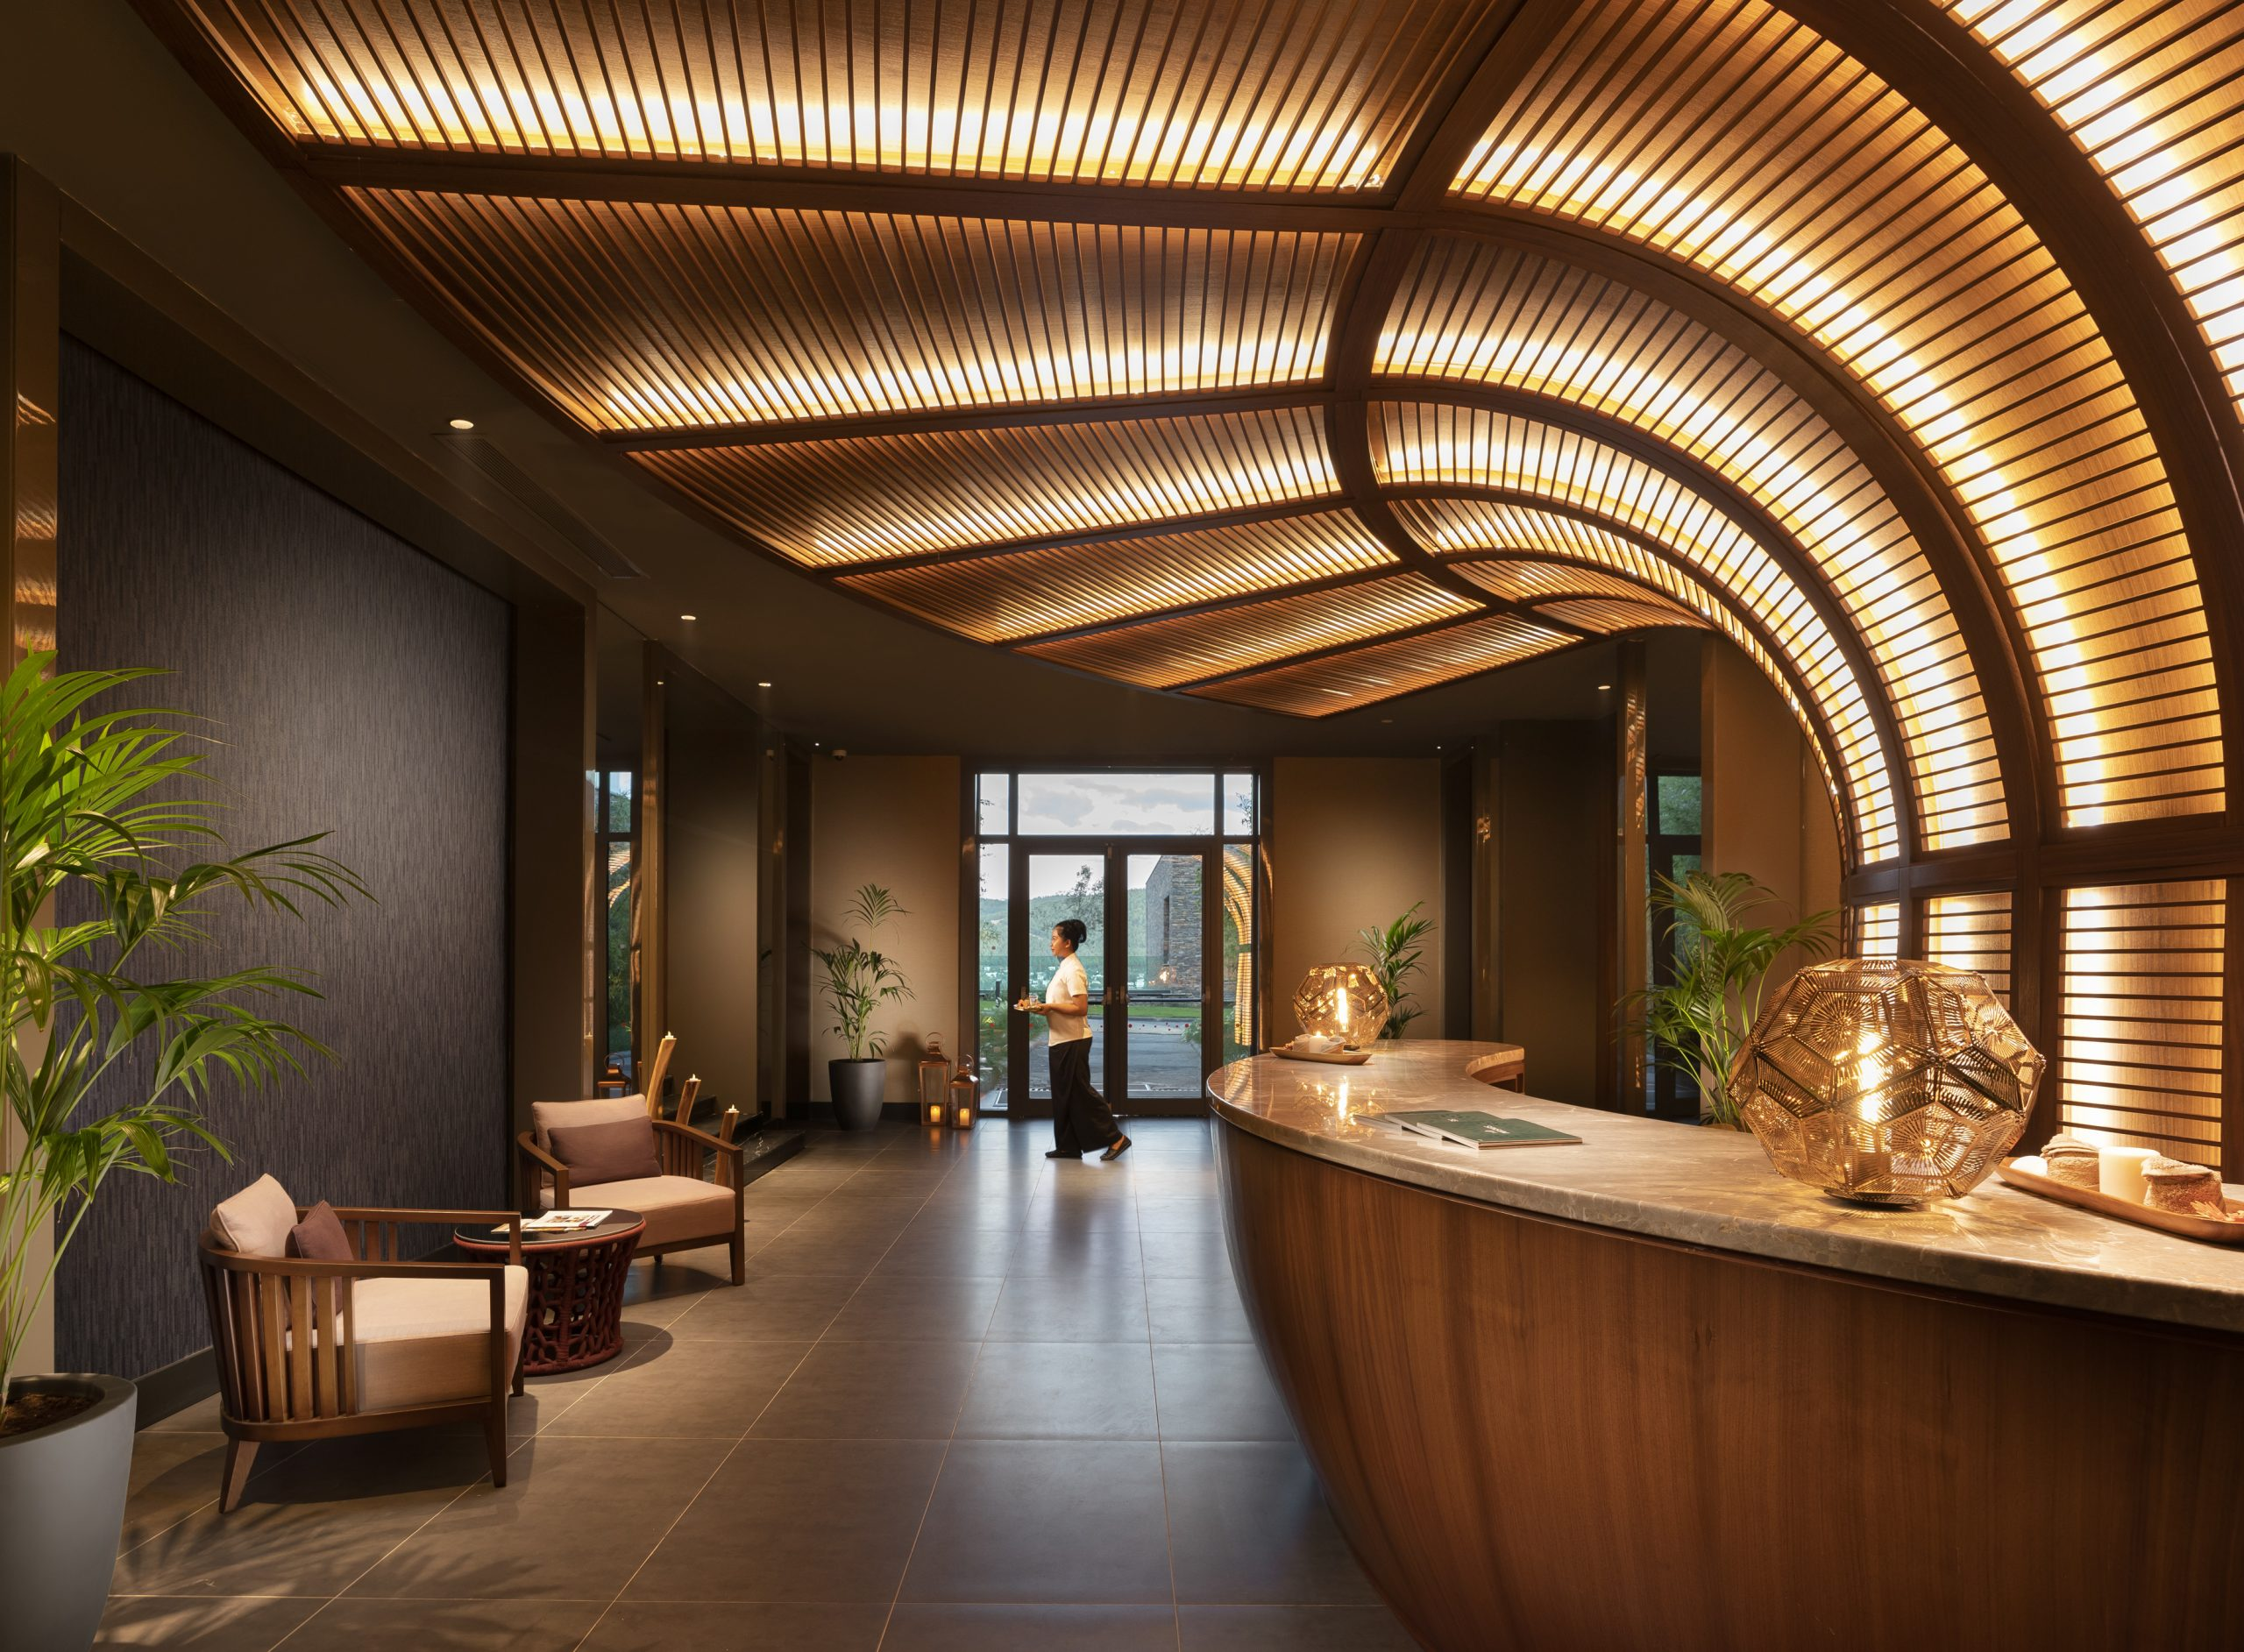 Lujo Art & Joy Hotel - Sensum SPA